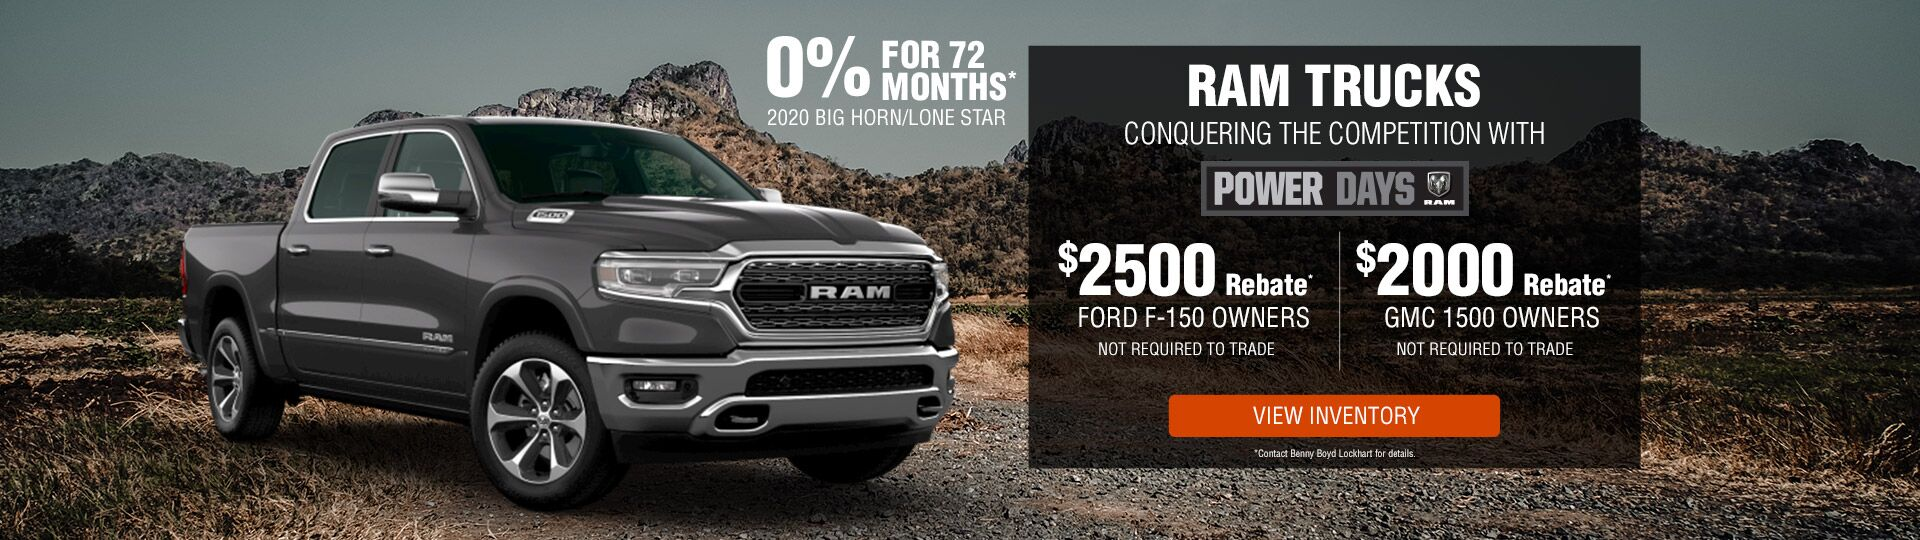 RAM Conquest Ford and GMC